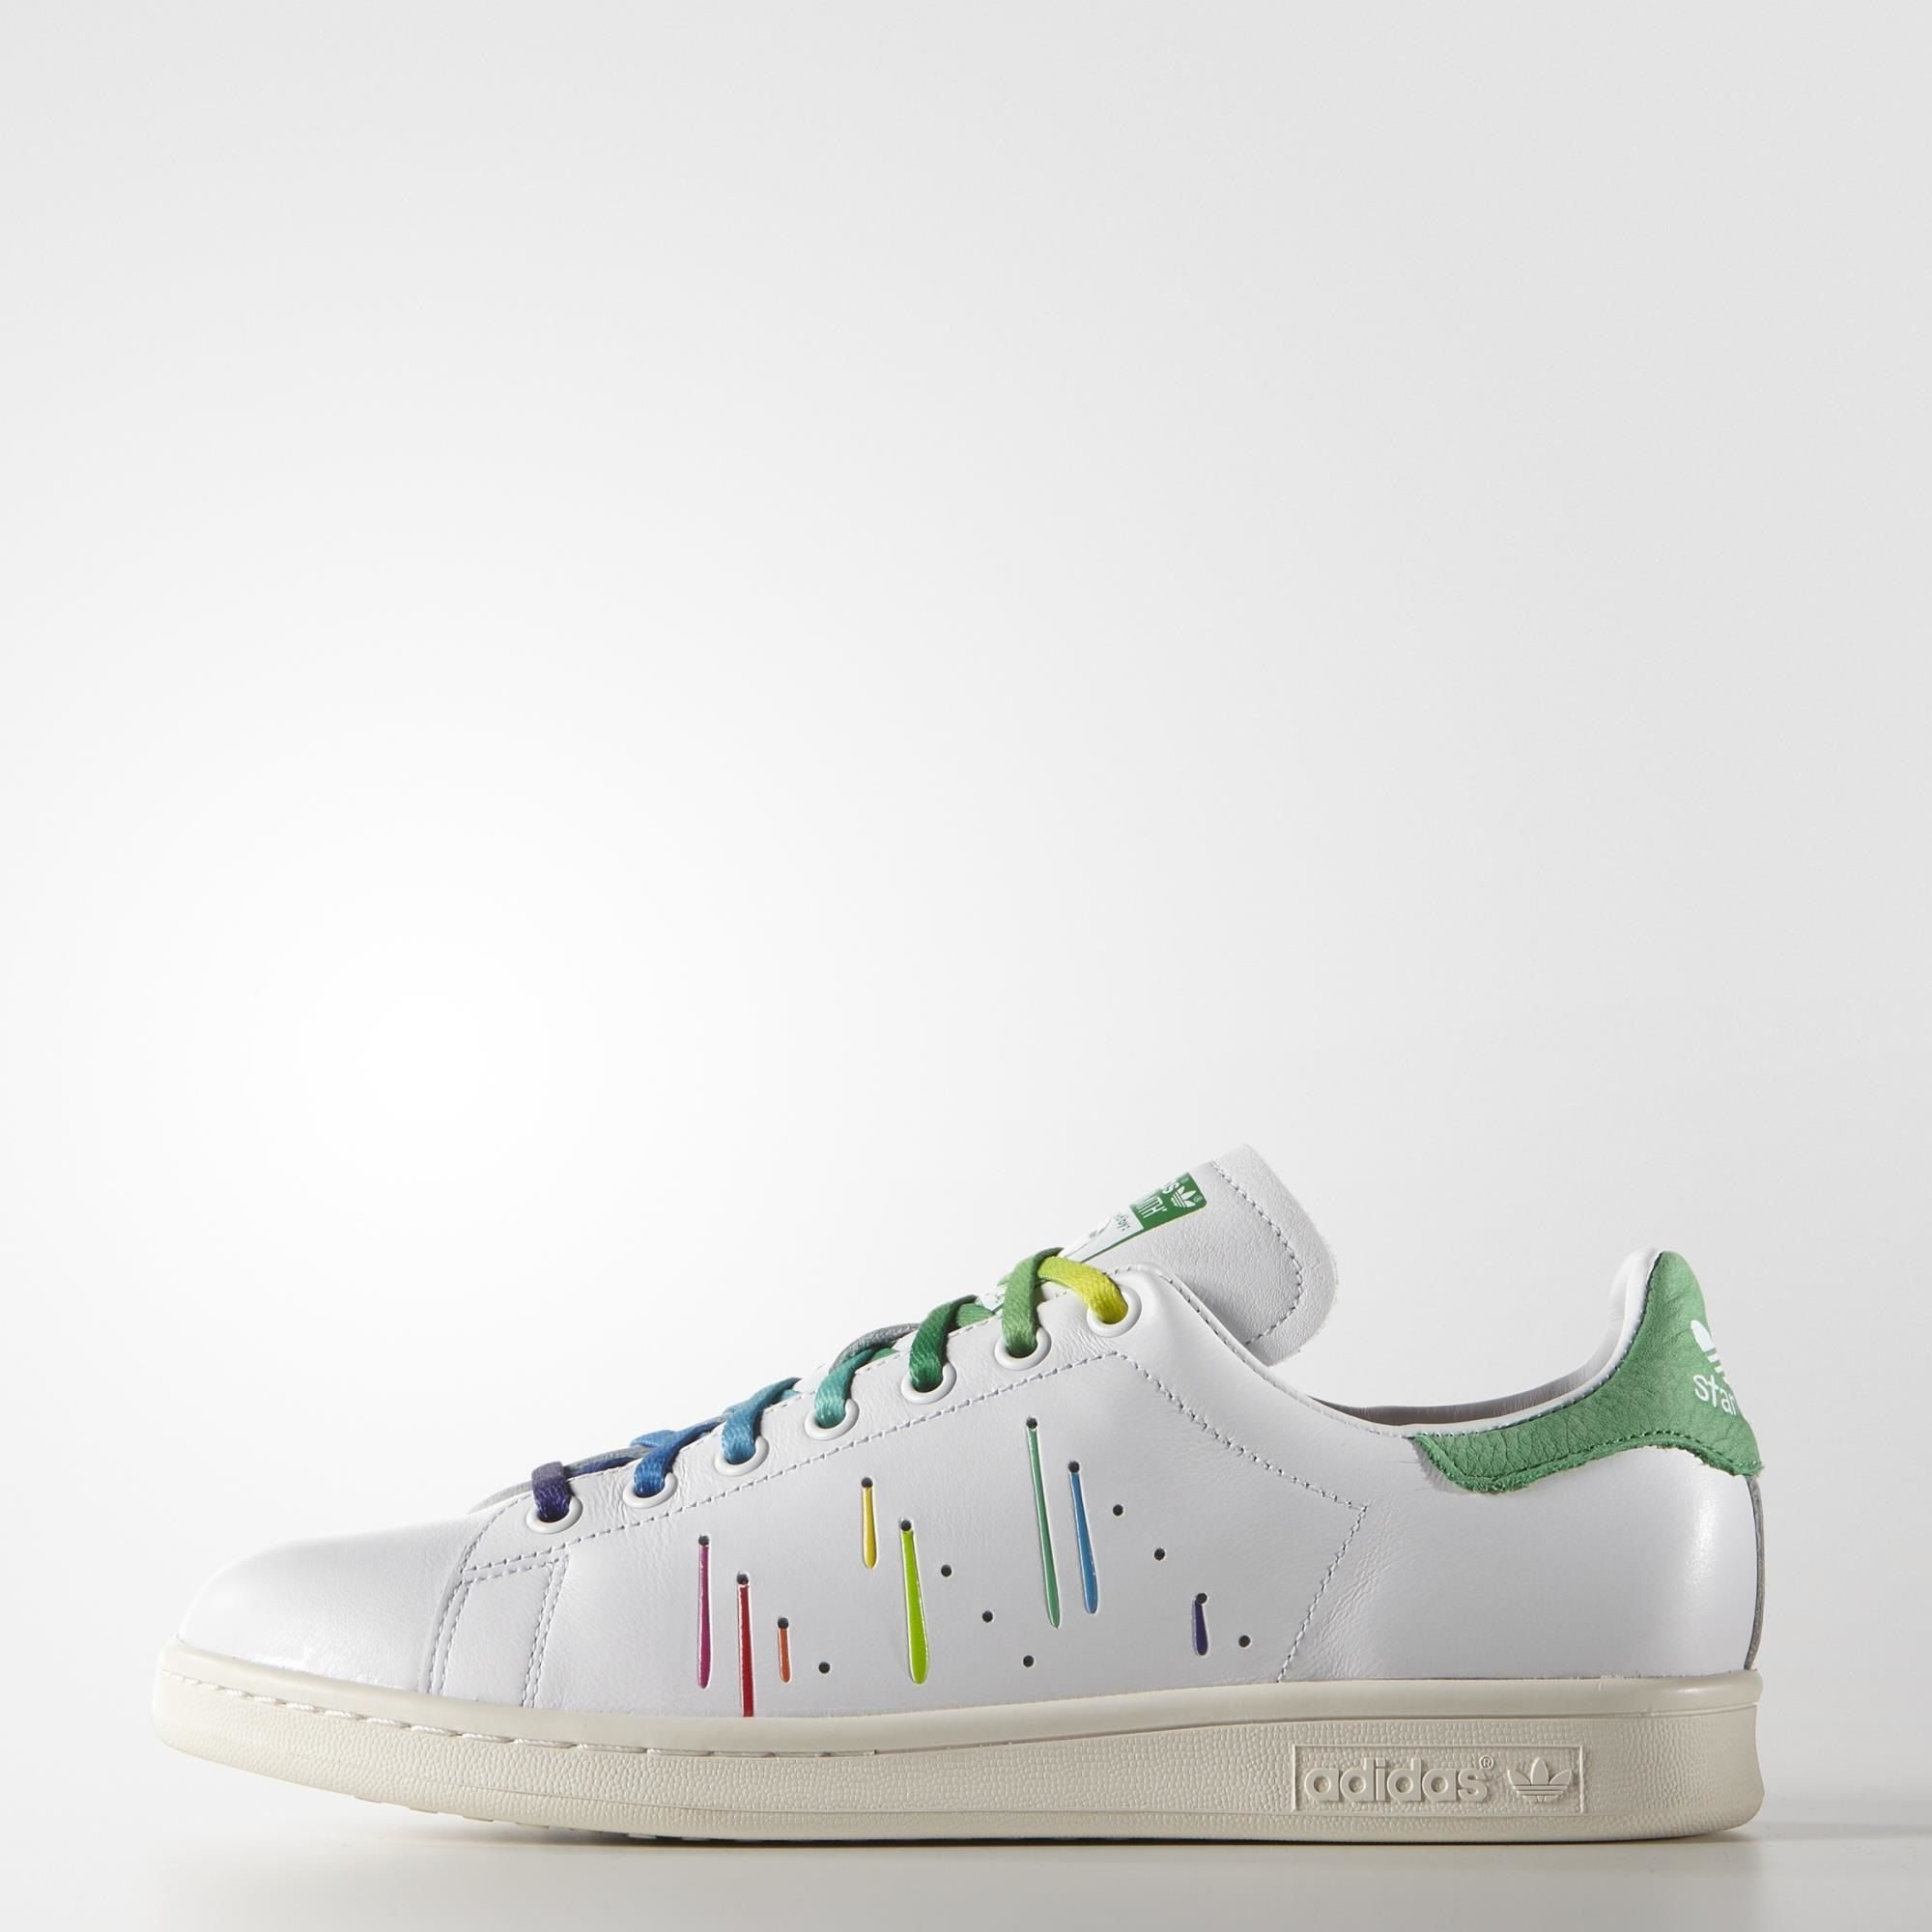 site réputé bcbf9 97e4c adidas - Chaussure Stan Smith | John Varvatos | Stan smith ...